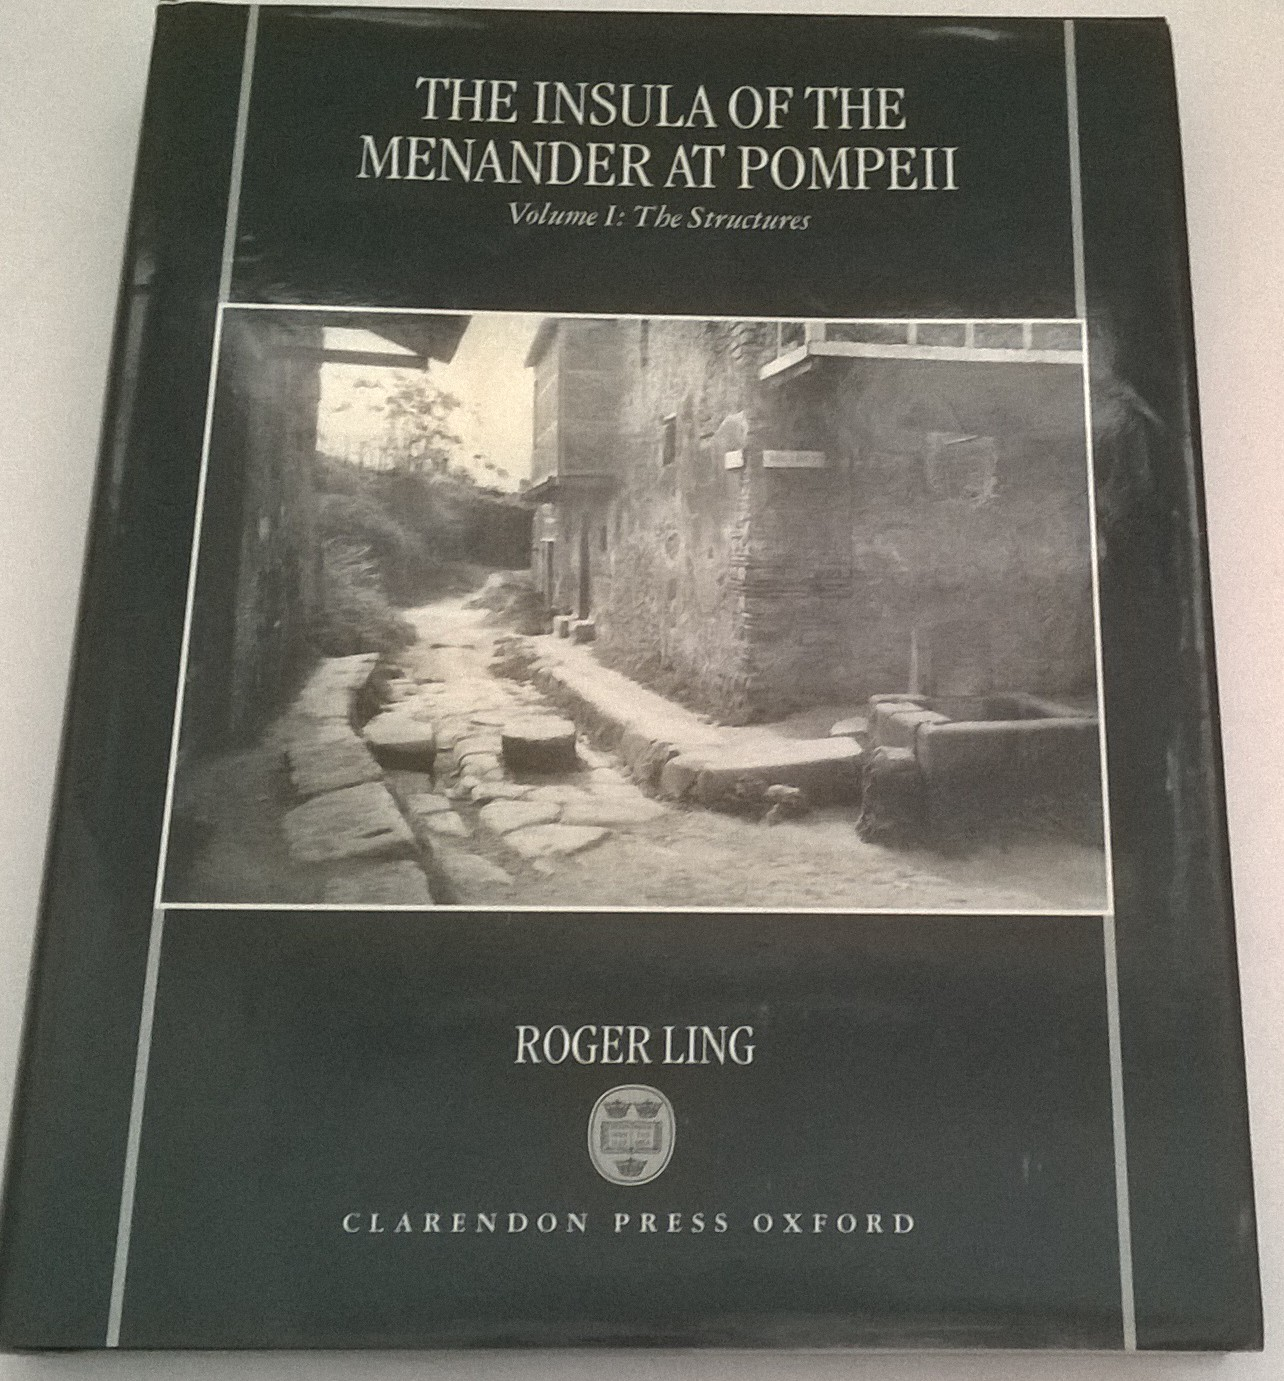 The Insula of the Menander at Pompeii :Volume I: The Structures